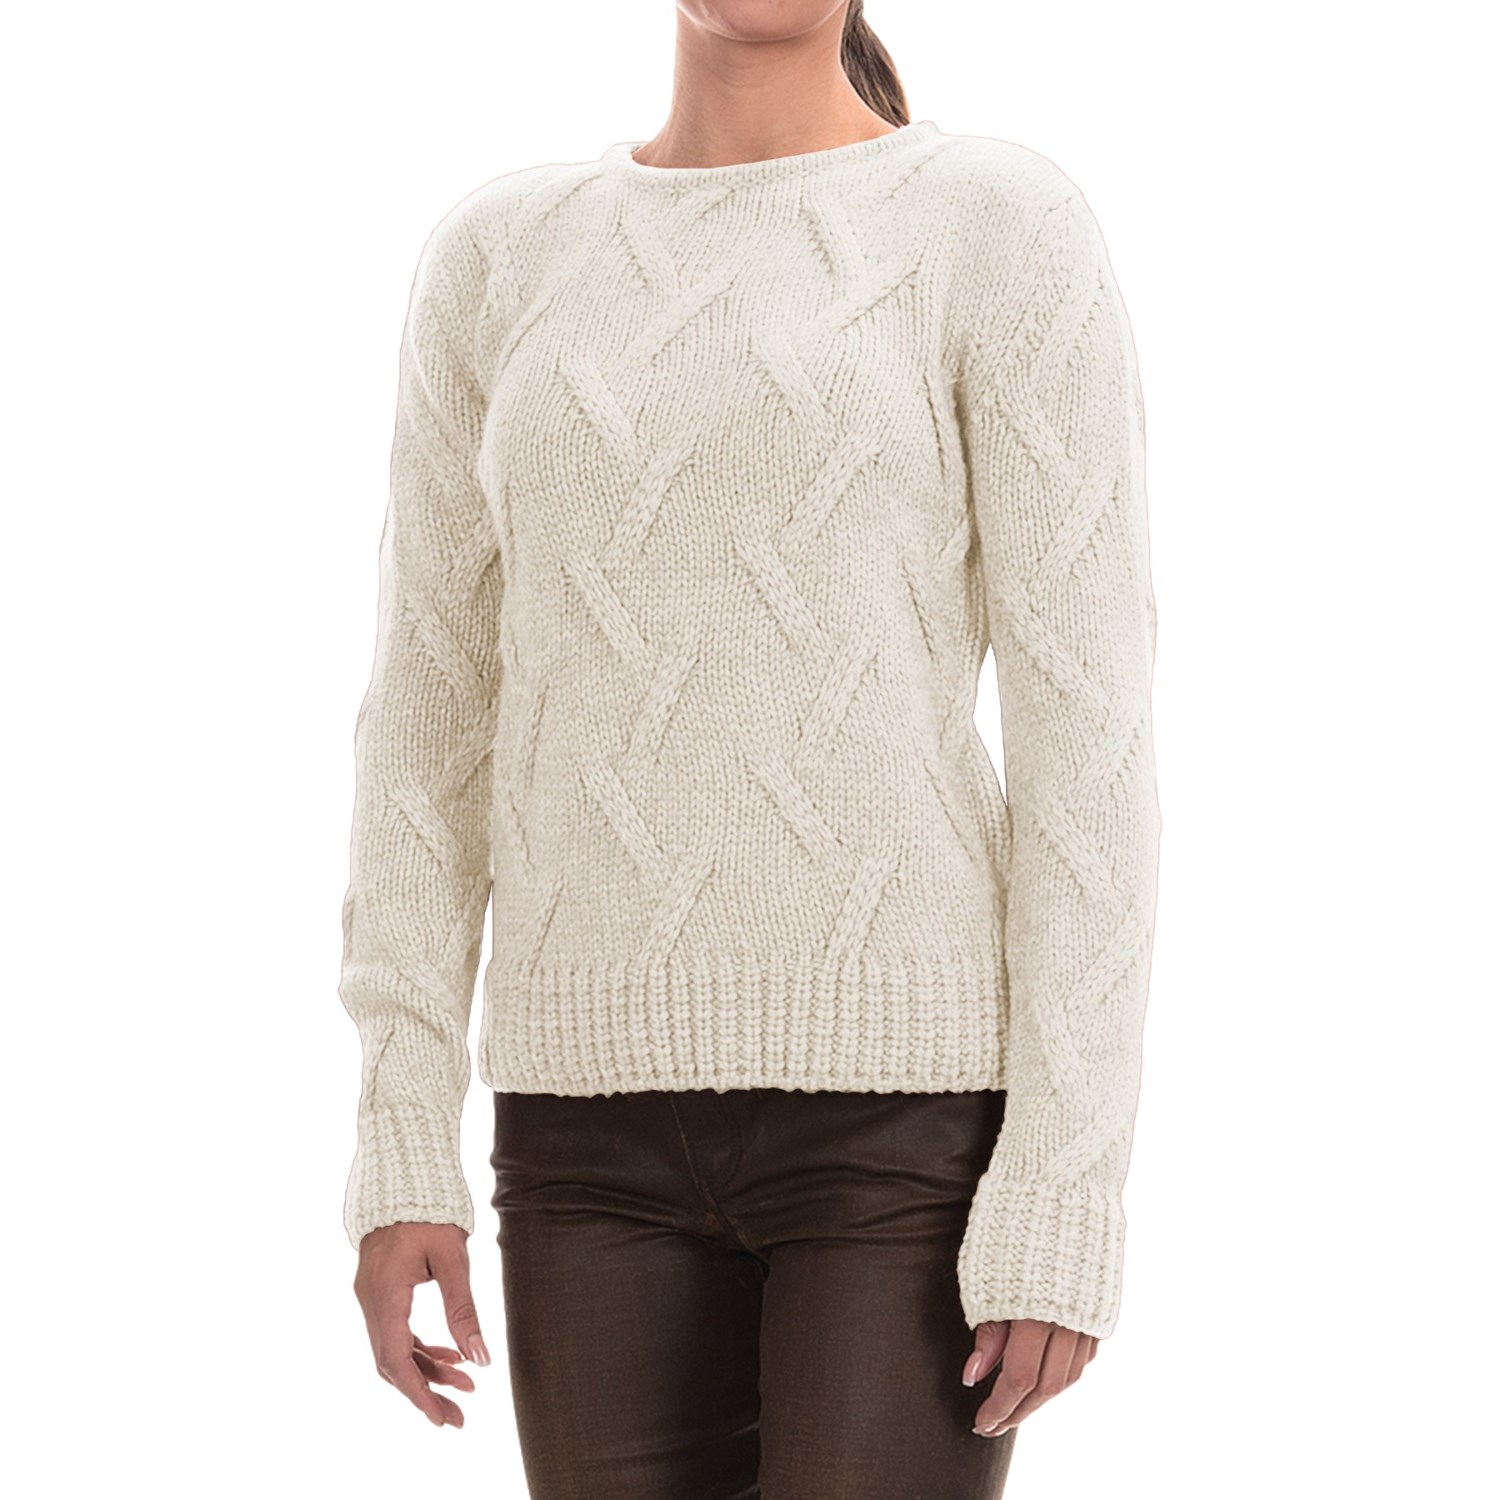 Knitting Sweaters For Women : Barbour ratio cable knit sweater for women save